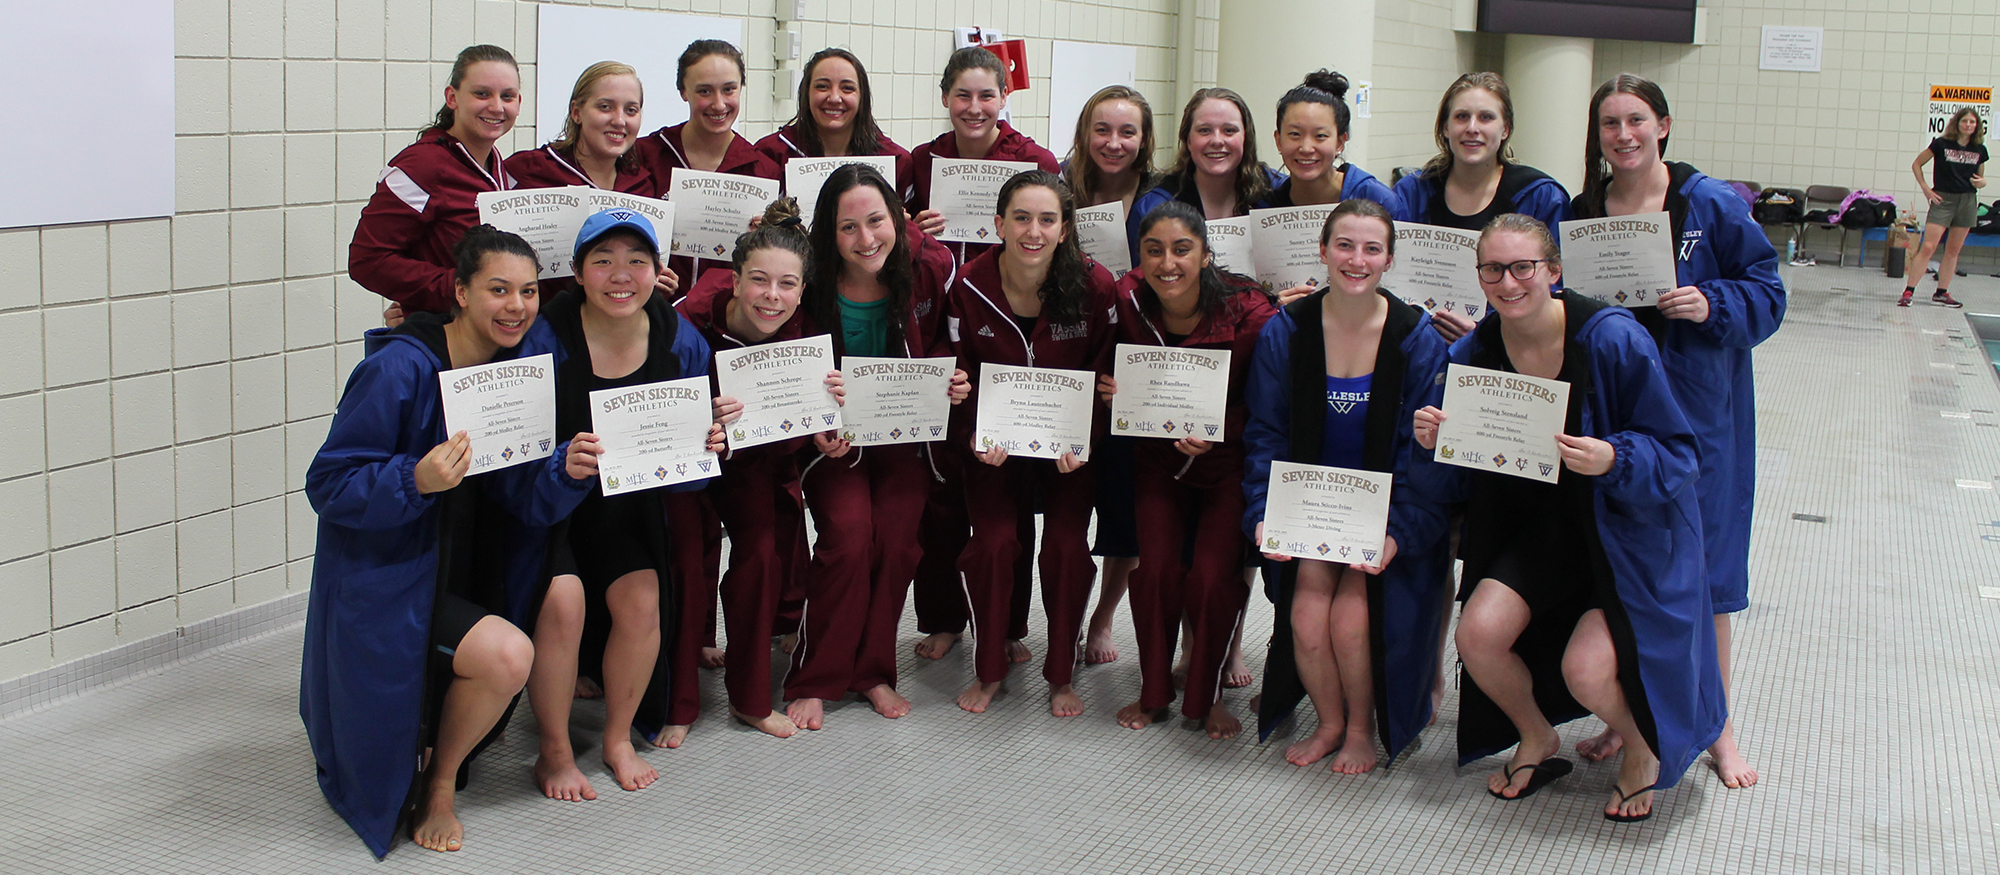 Photo showing the members of the 2018 Seven Sisters Swimming & Diving All-Tournament Team. January 21, 2018.